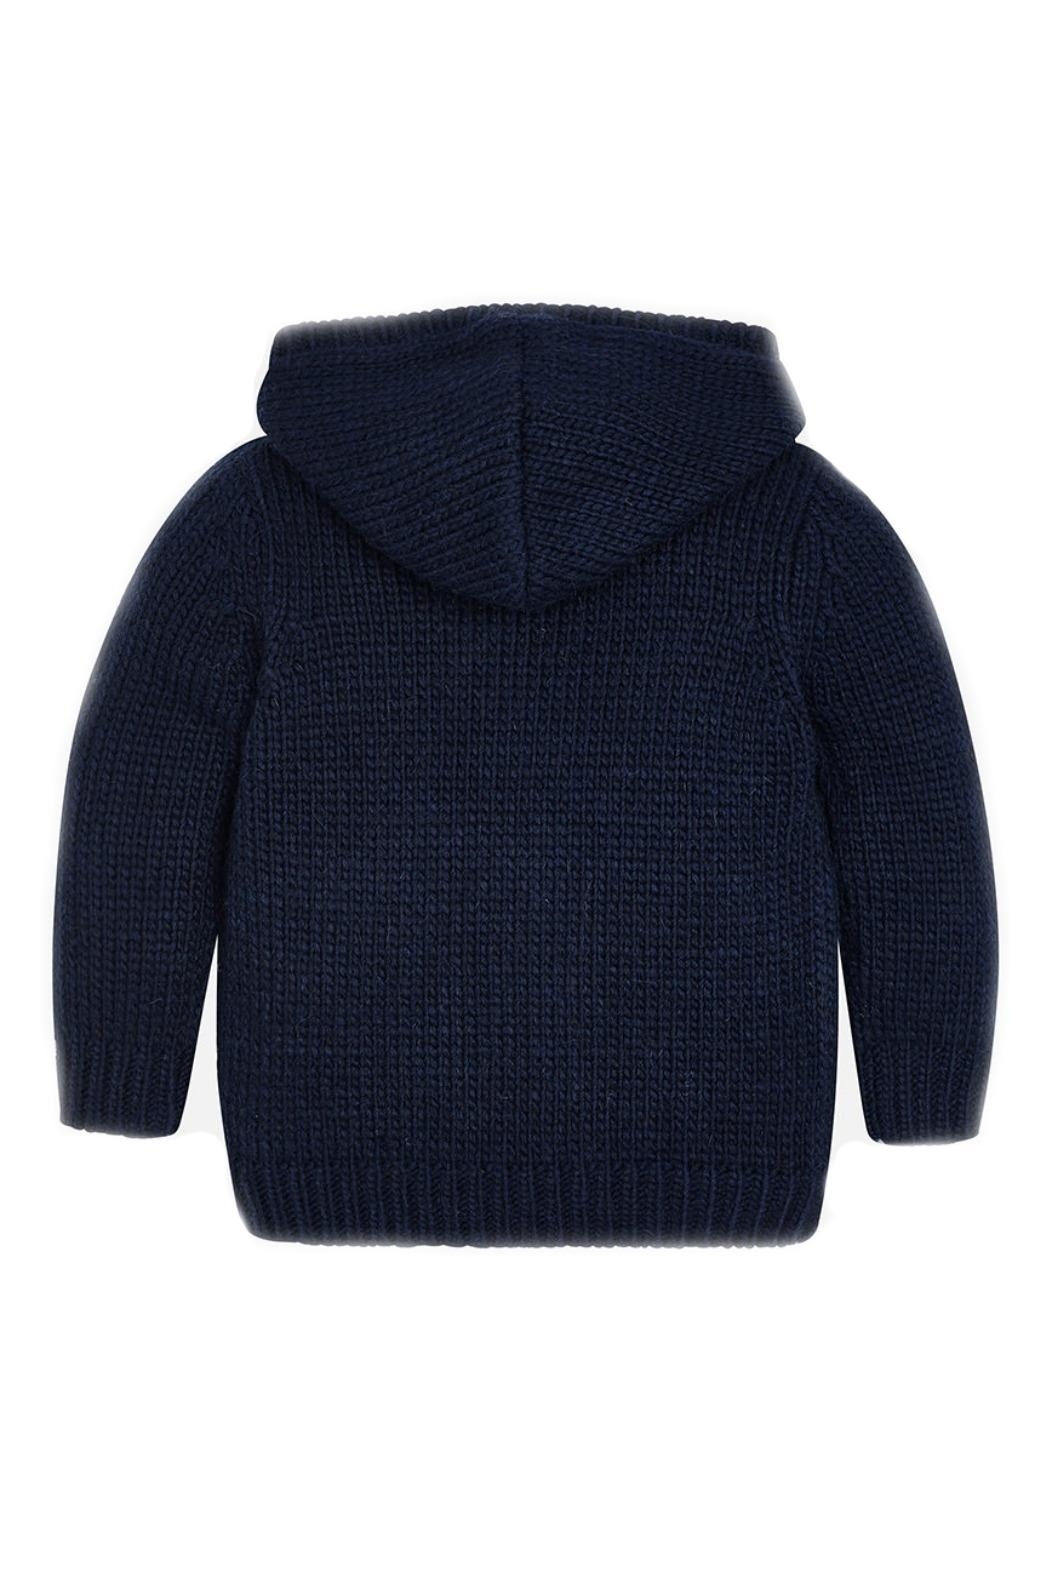 Mayoral Boys-Navy-Knit-Toggle-Cardigan-With-Hood - Front Full Image